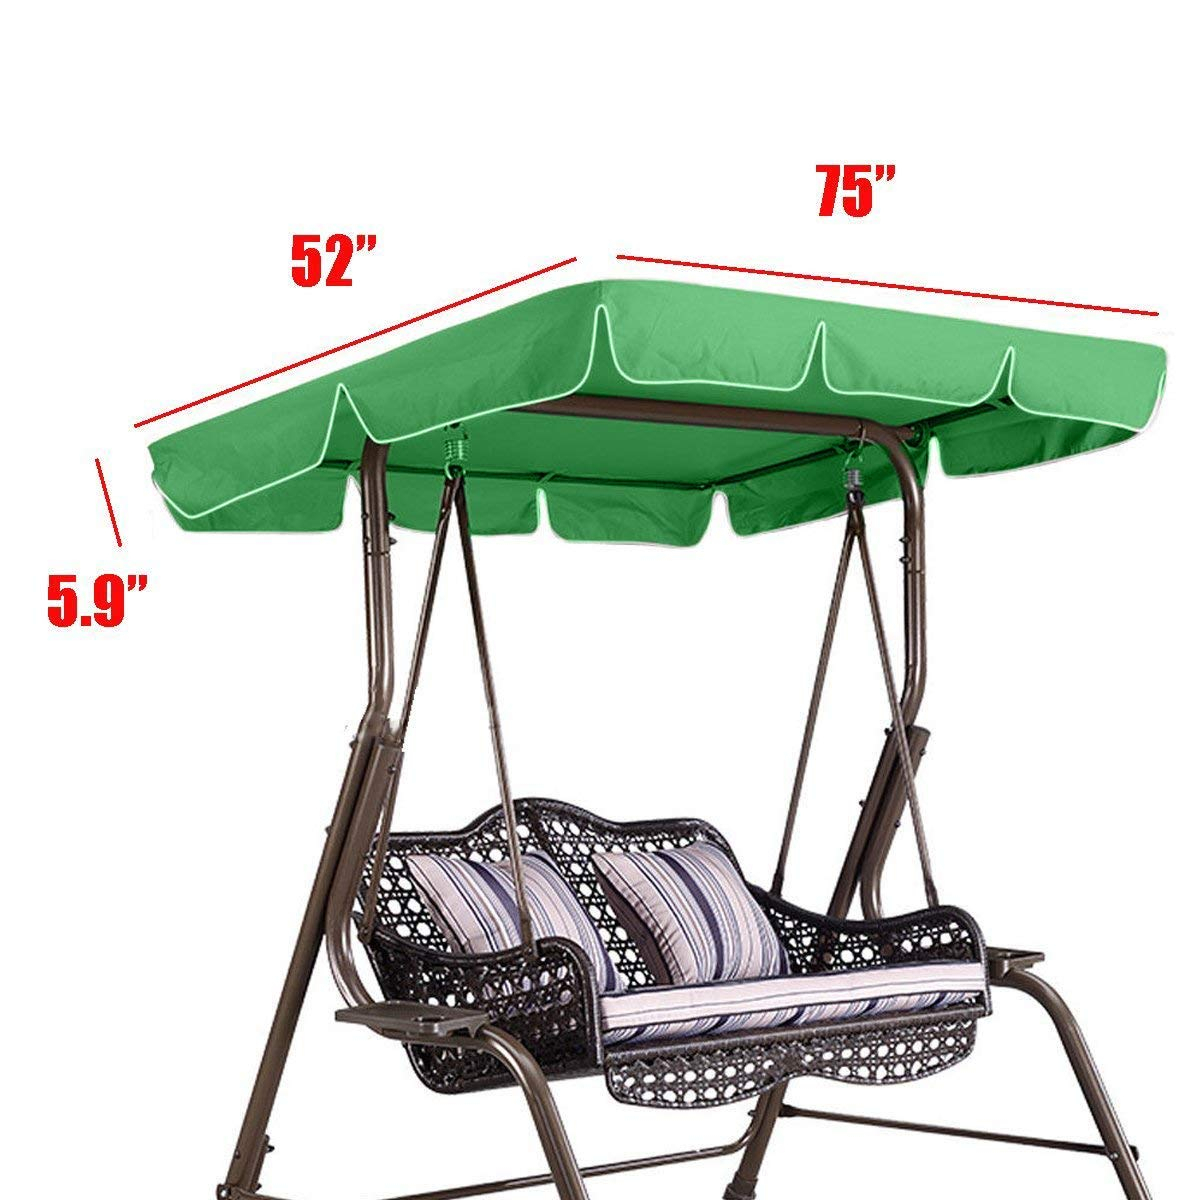 Cheap Canopy For Porch Swing, Find Canopy For Porch Swing For 2 Person Adjustable Tilt Canopy Patio Loveseat Porch Swings (View 18 of 25)